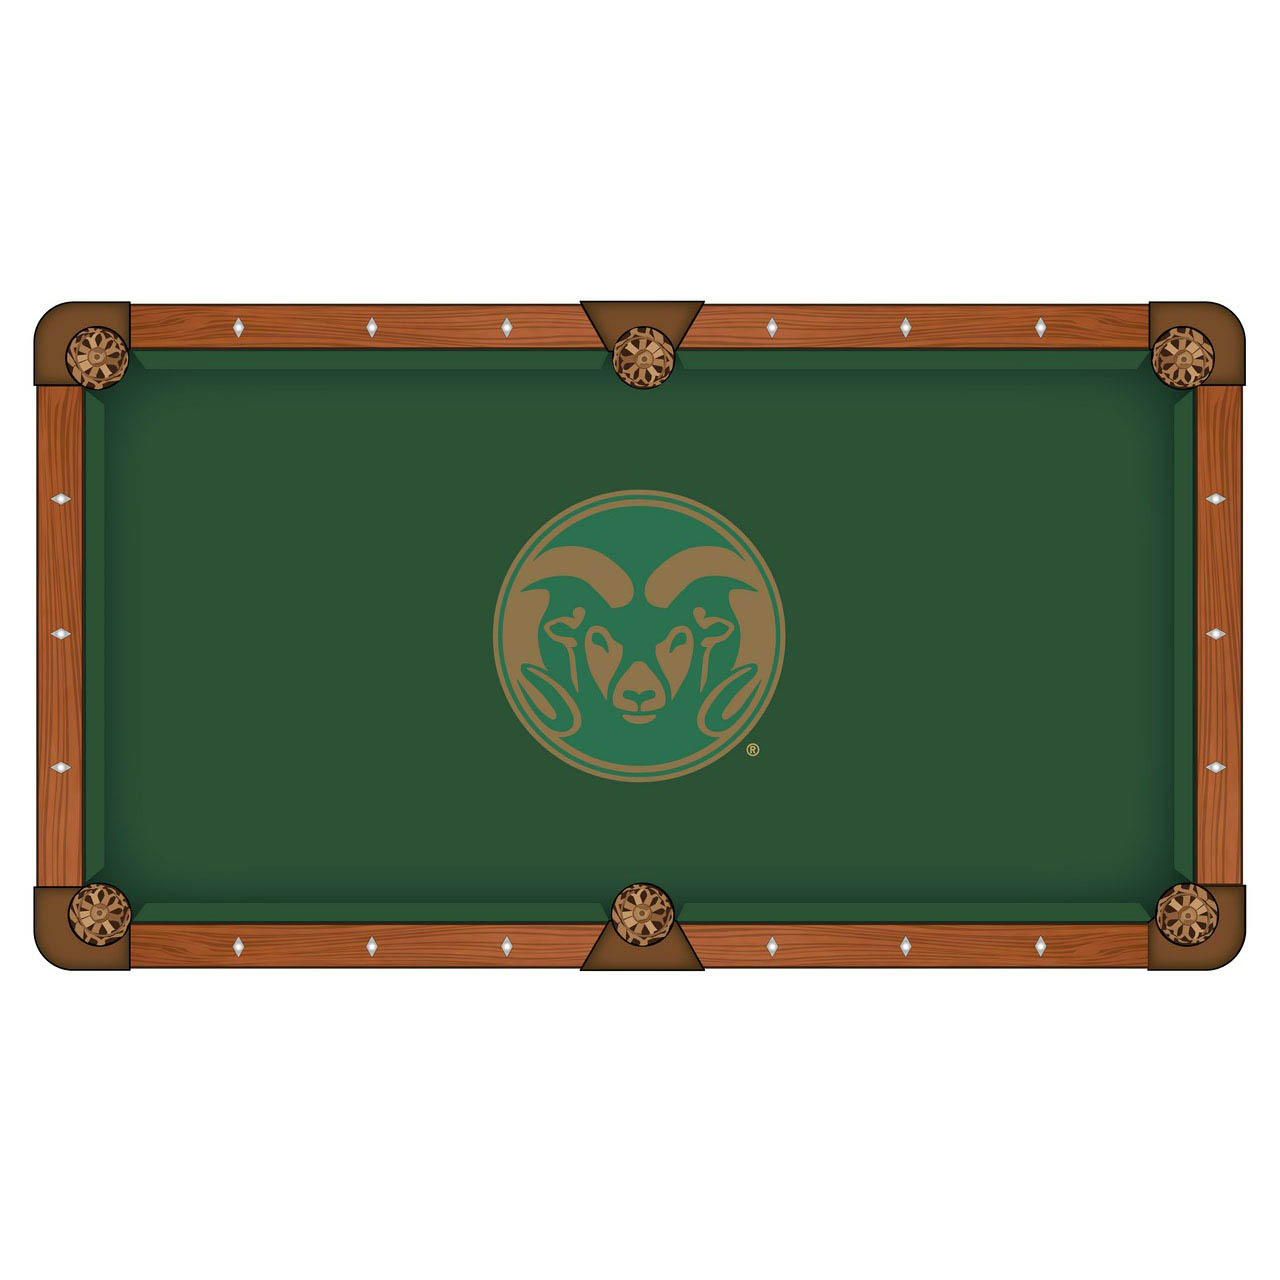 Trustworthy Colorado State University Pool Table Cloth Product Photo